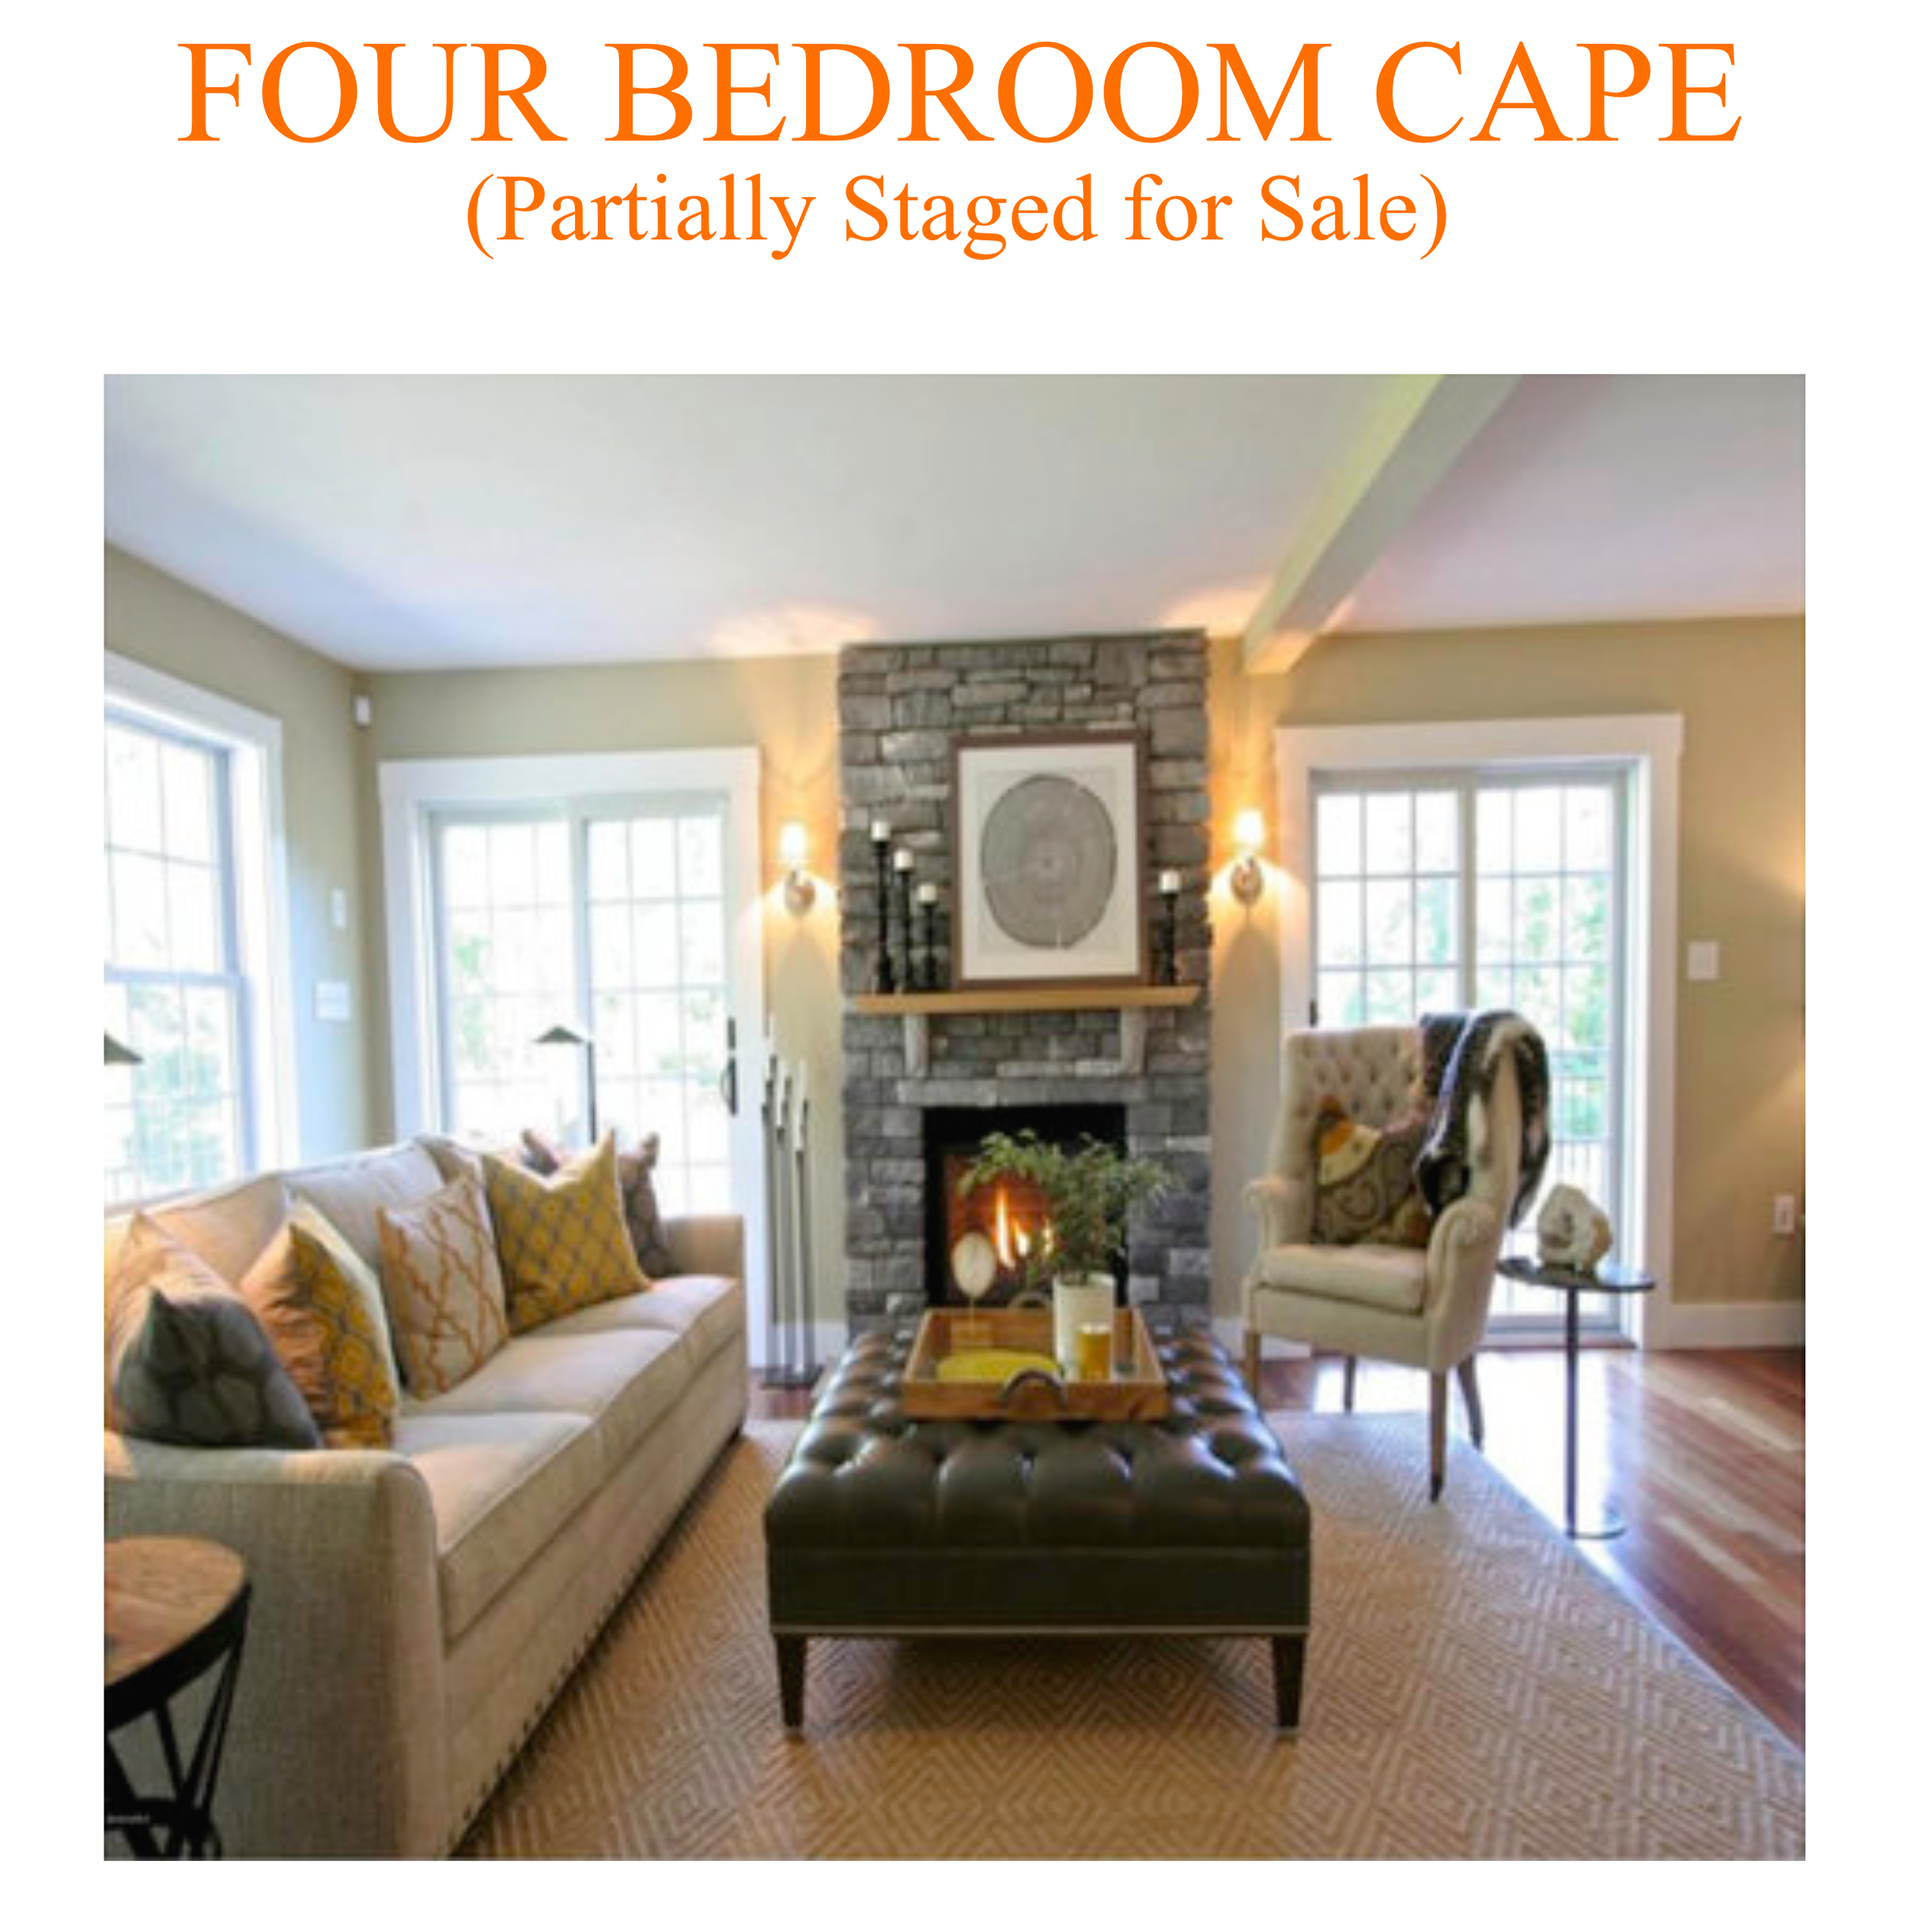 Four bedroom cape.png